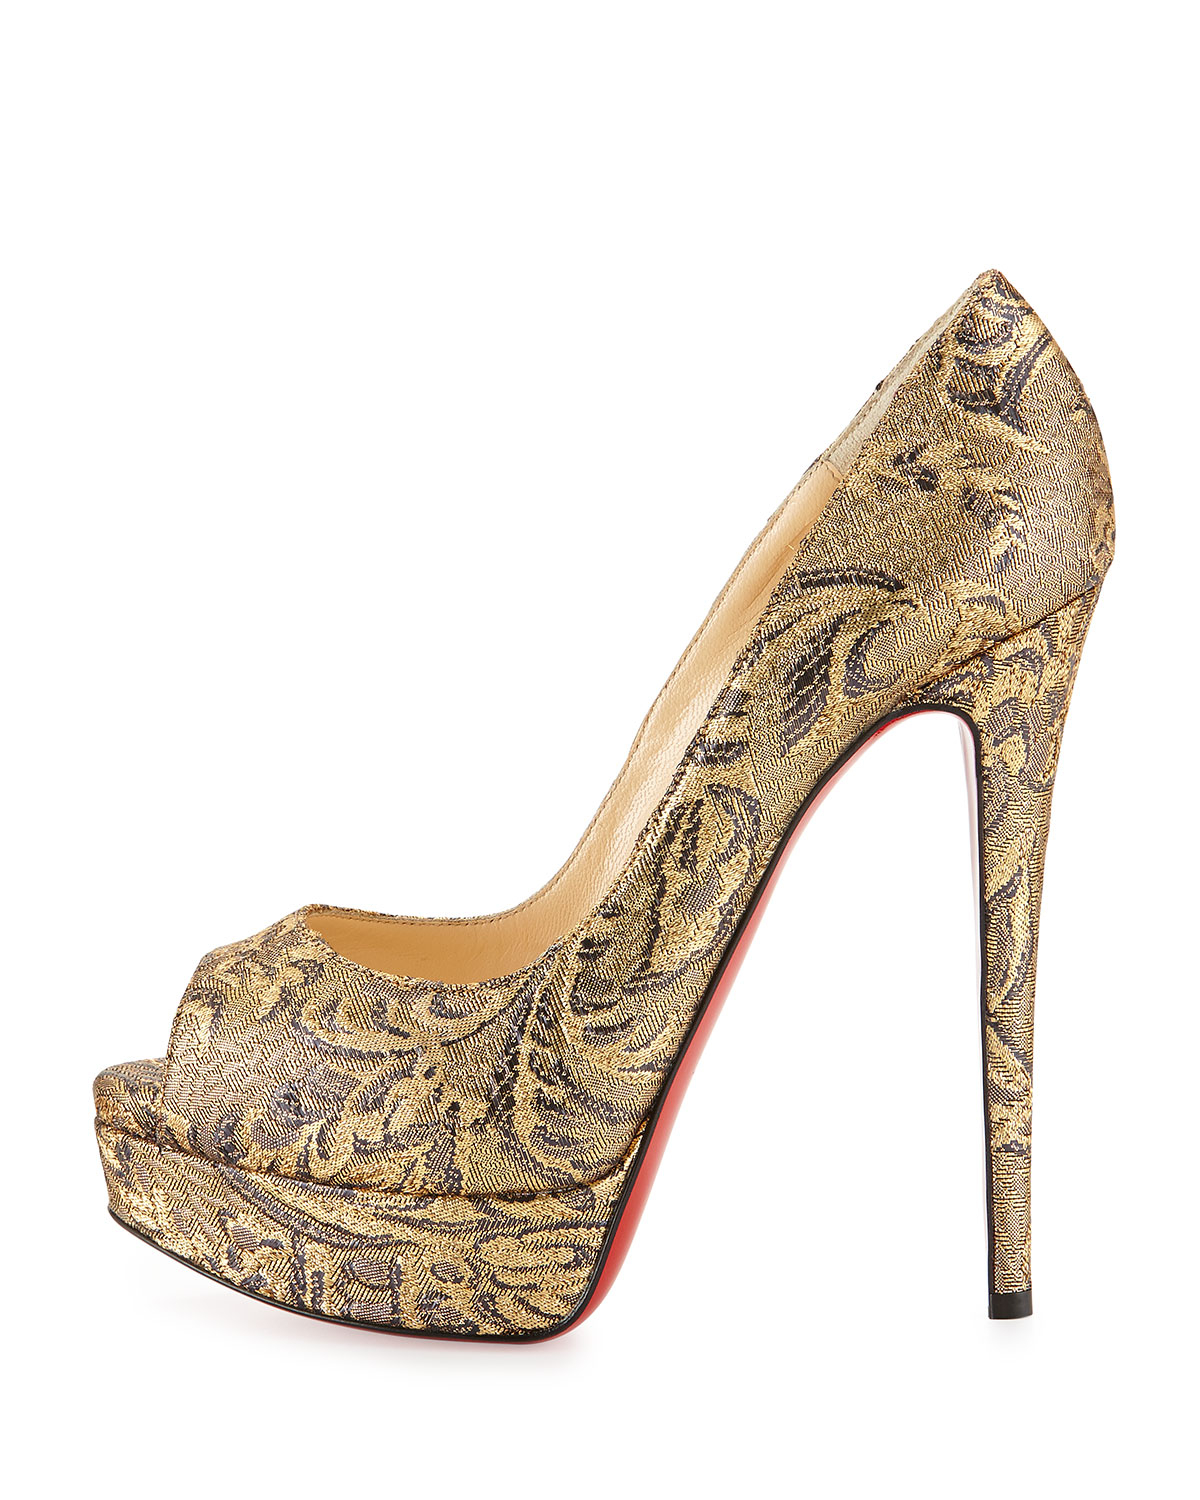 6a59c95e04fb christian louboutin metallic python point-toe pumps